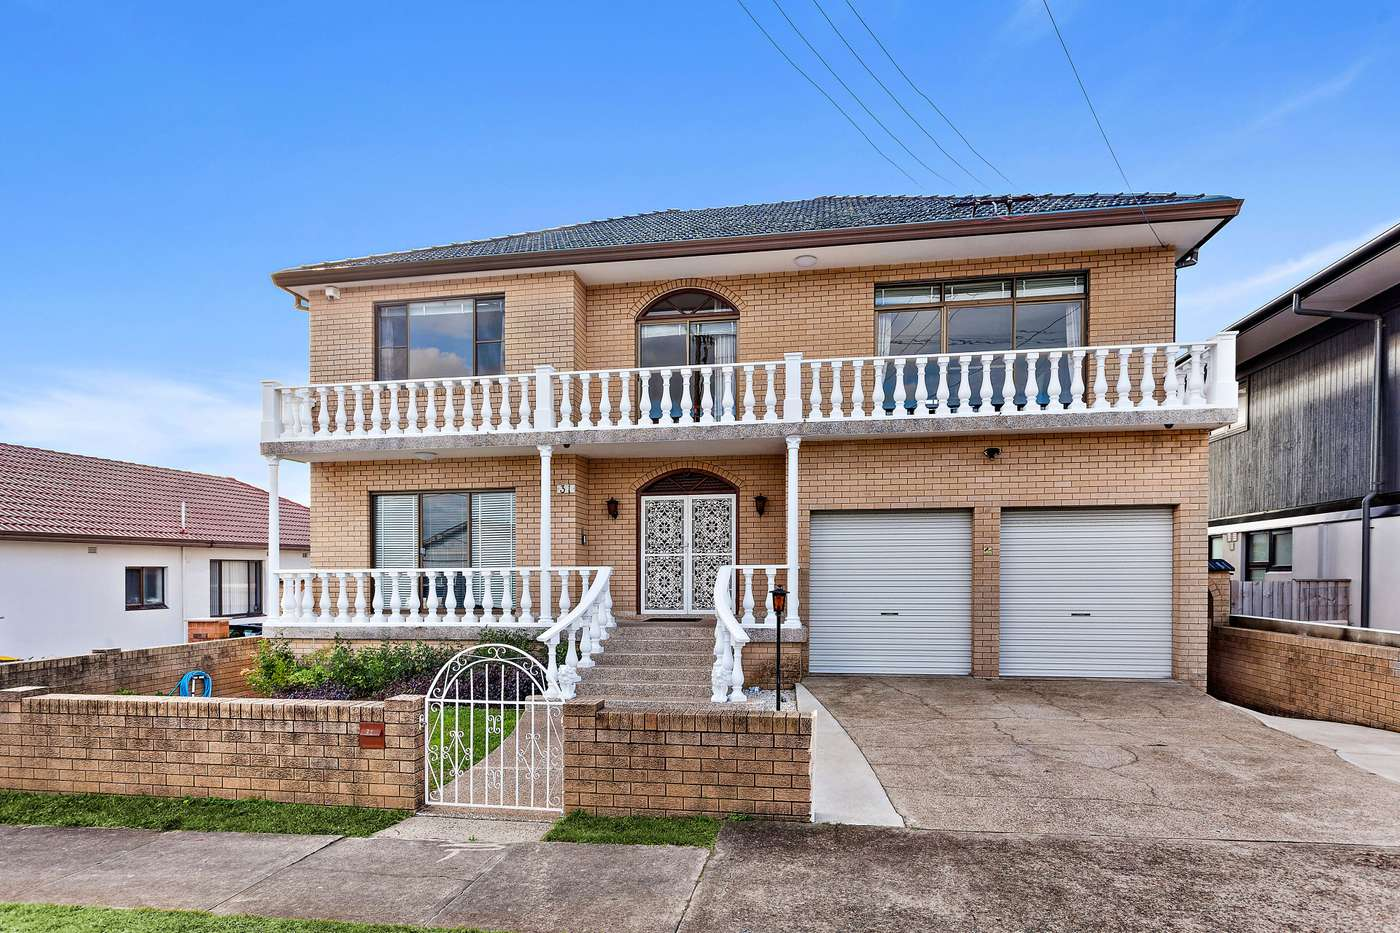 Main view of Homely house listing, 31 Henson Street, Brighton-le-sands, NSW 2216